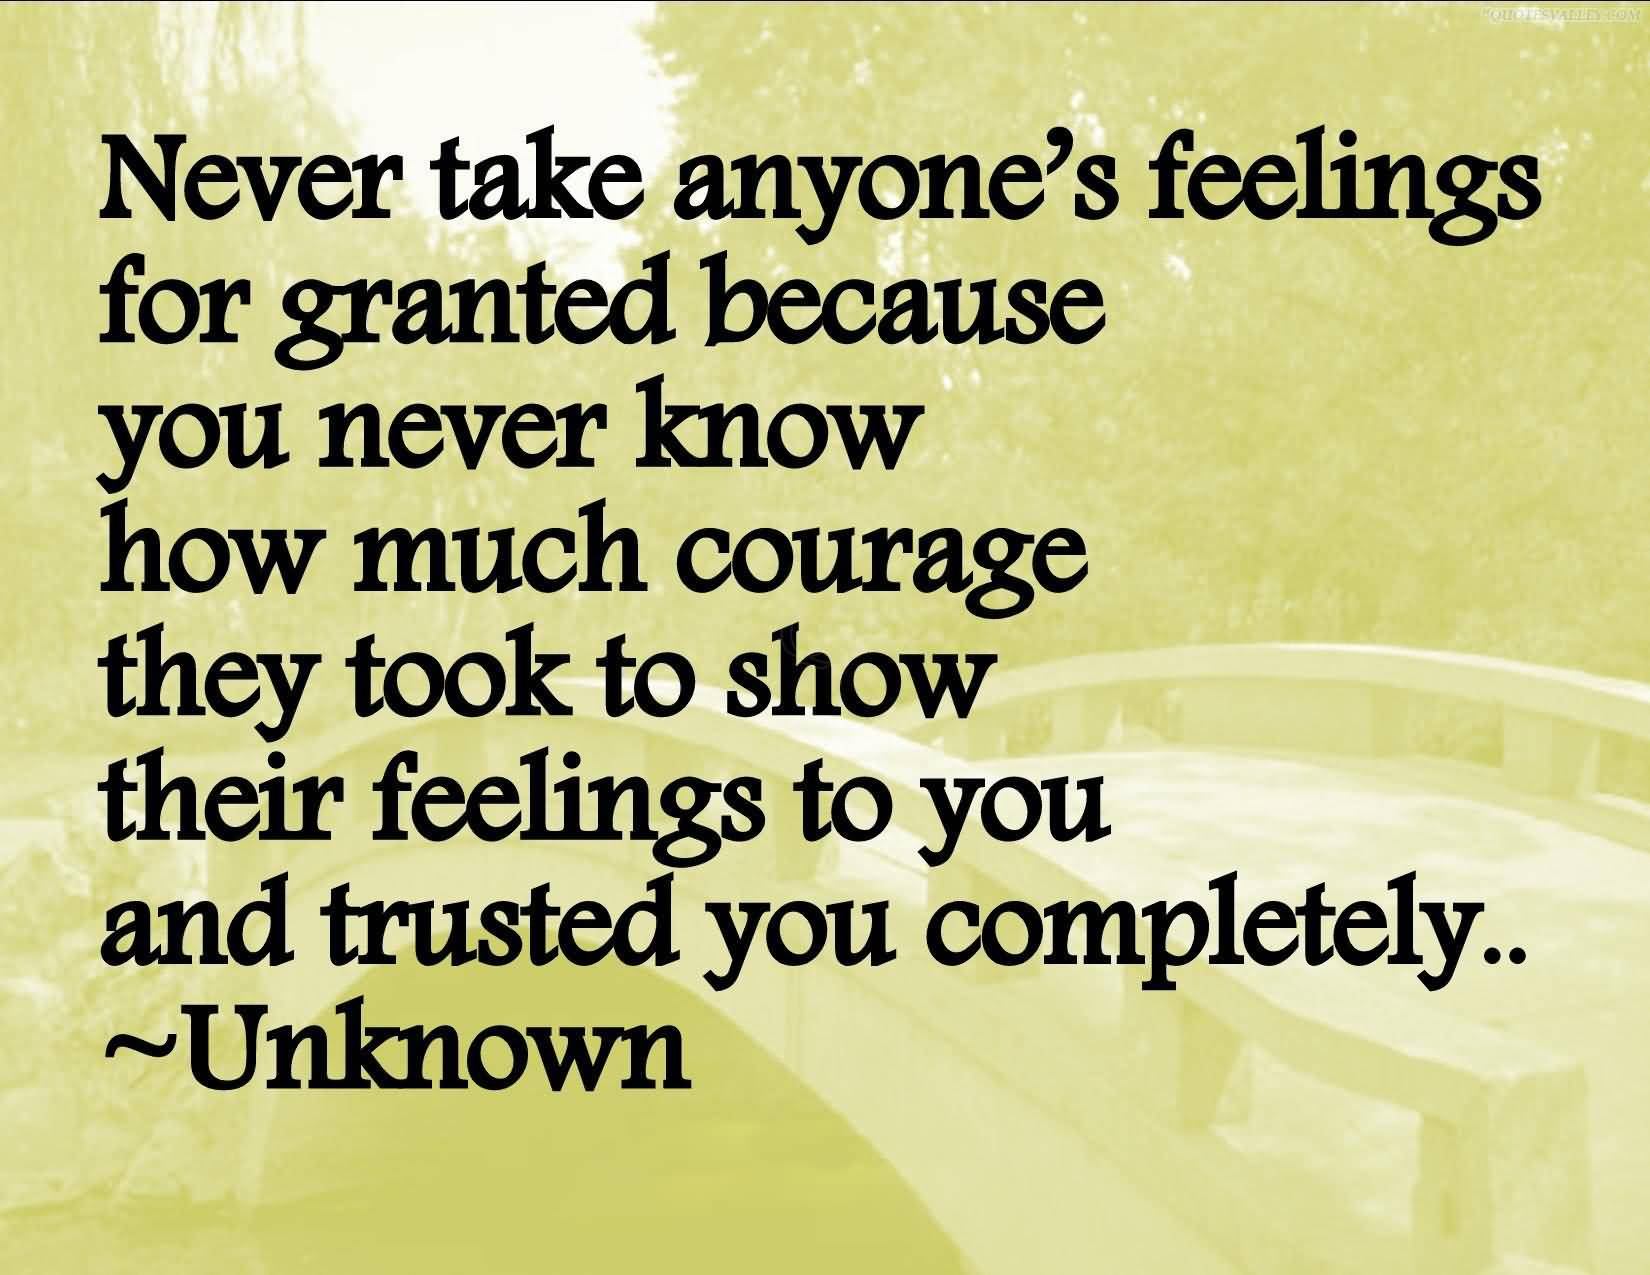 Quotes About Being Taken For Granted Quotesgram: Never Take People For Granted Quotes. QuotesGram